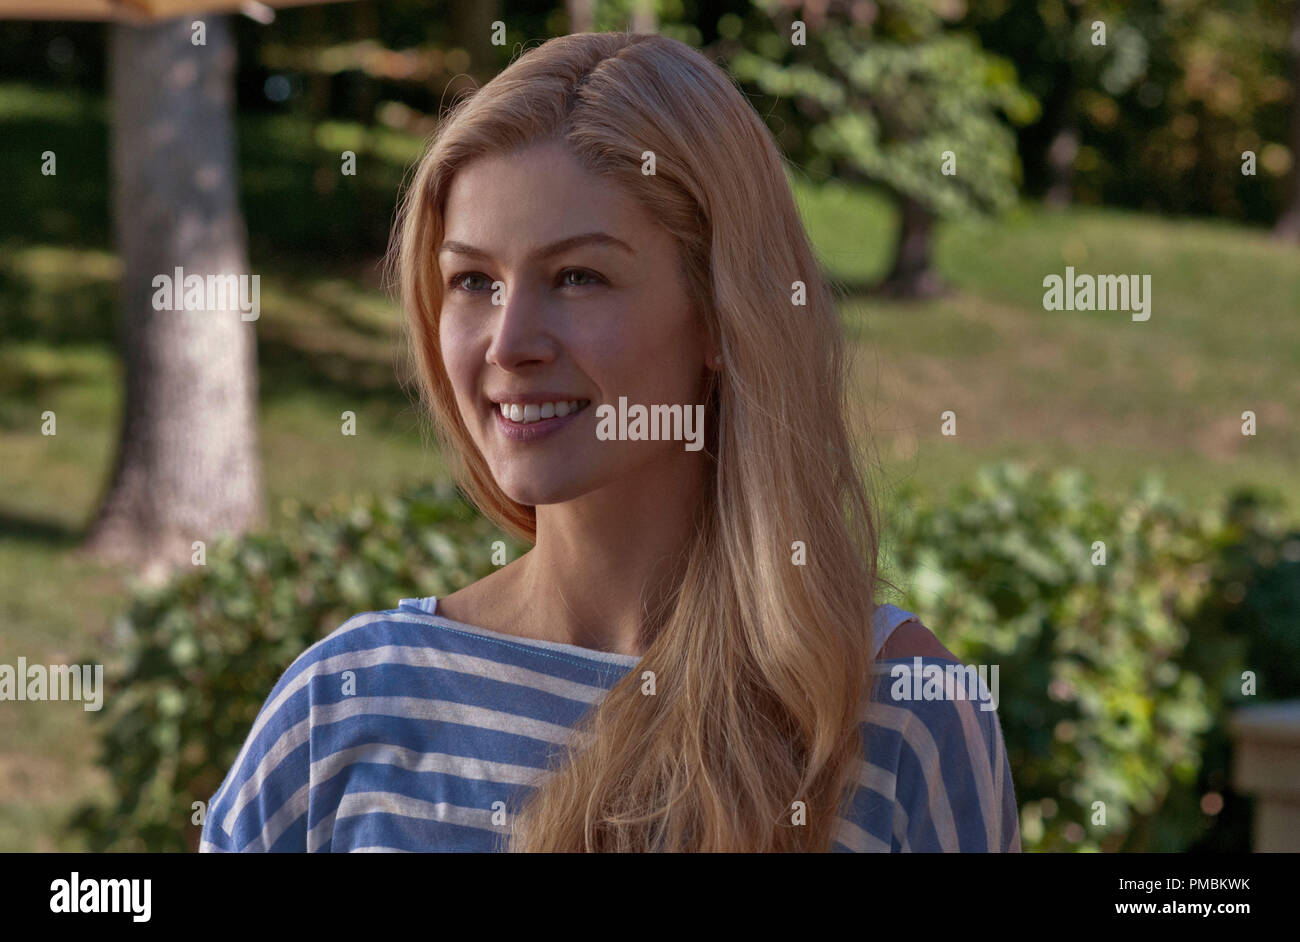 GONE GIRL (2014) Rosamund Pike portrays Amy Dunne, whose mysterious disappearance turns her husband into a possible murder suspect. - Stock Image